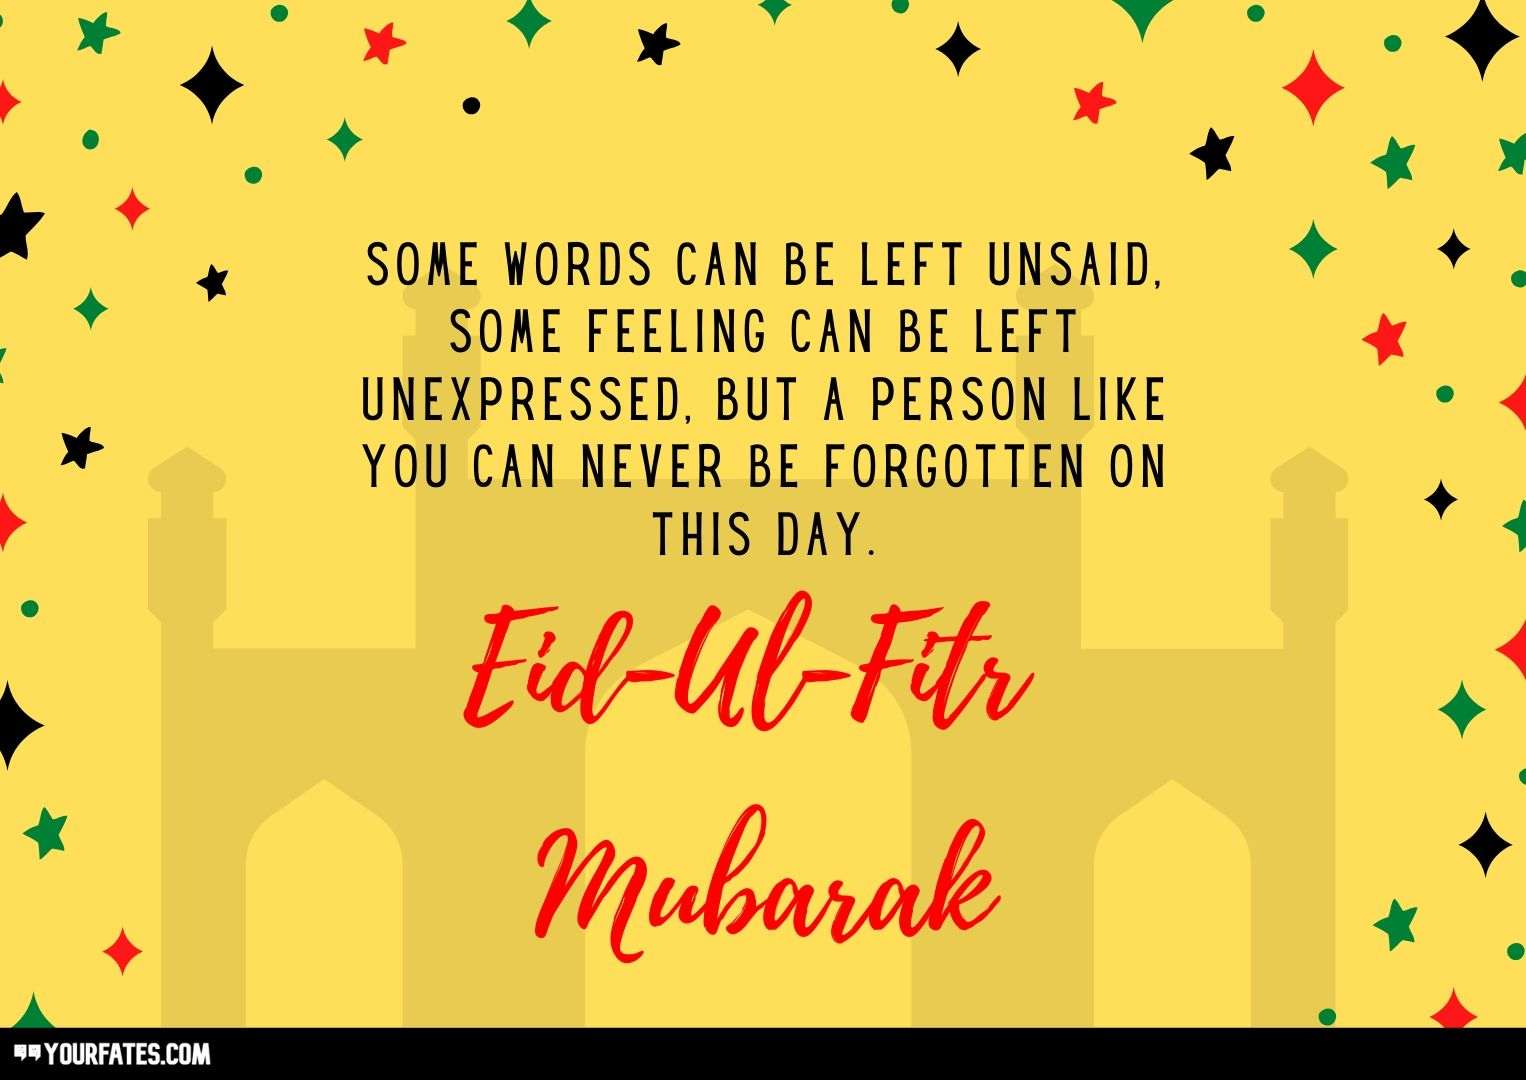 Happy Eid Al Fitr Eid Mubarak Wishes Messages Images 2021